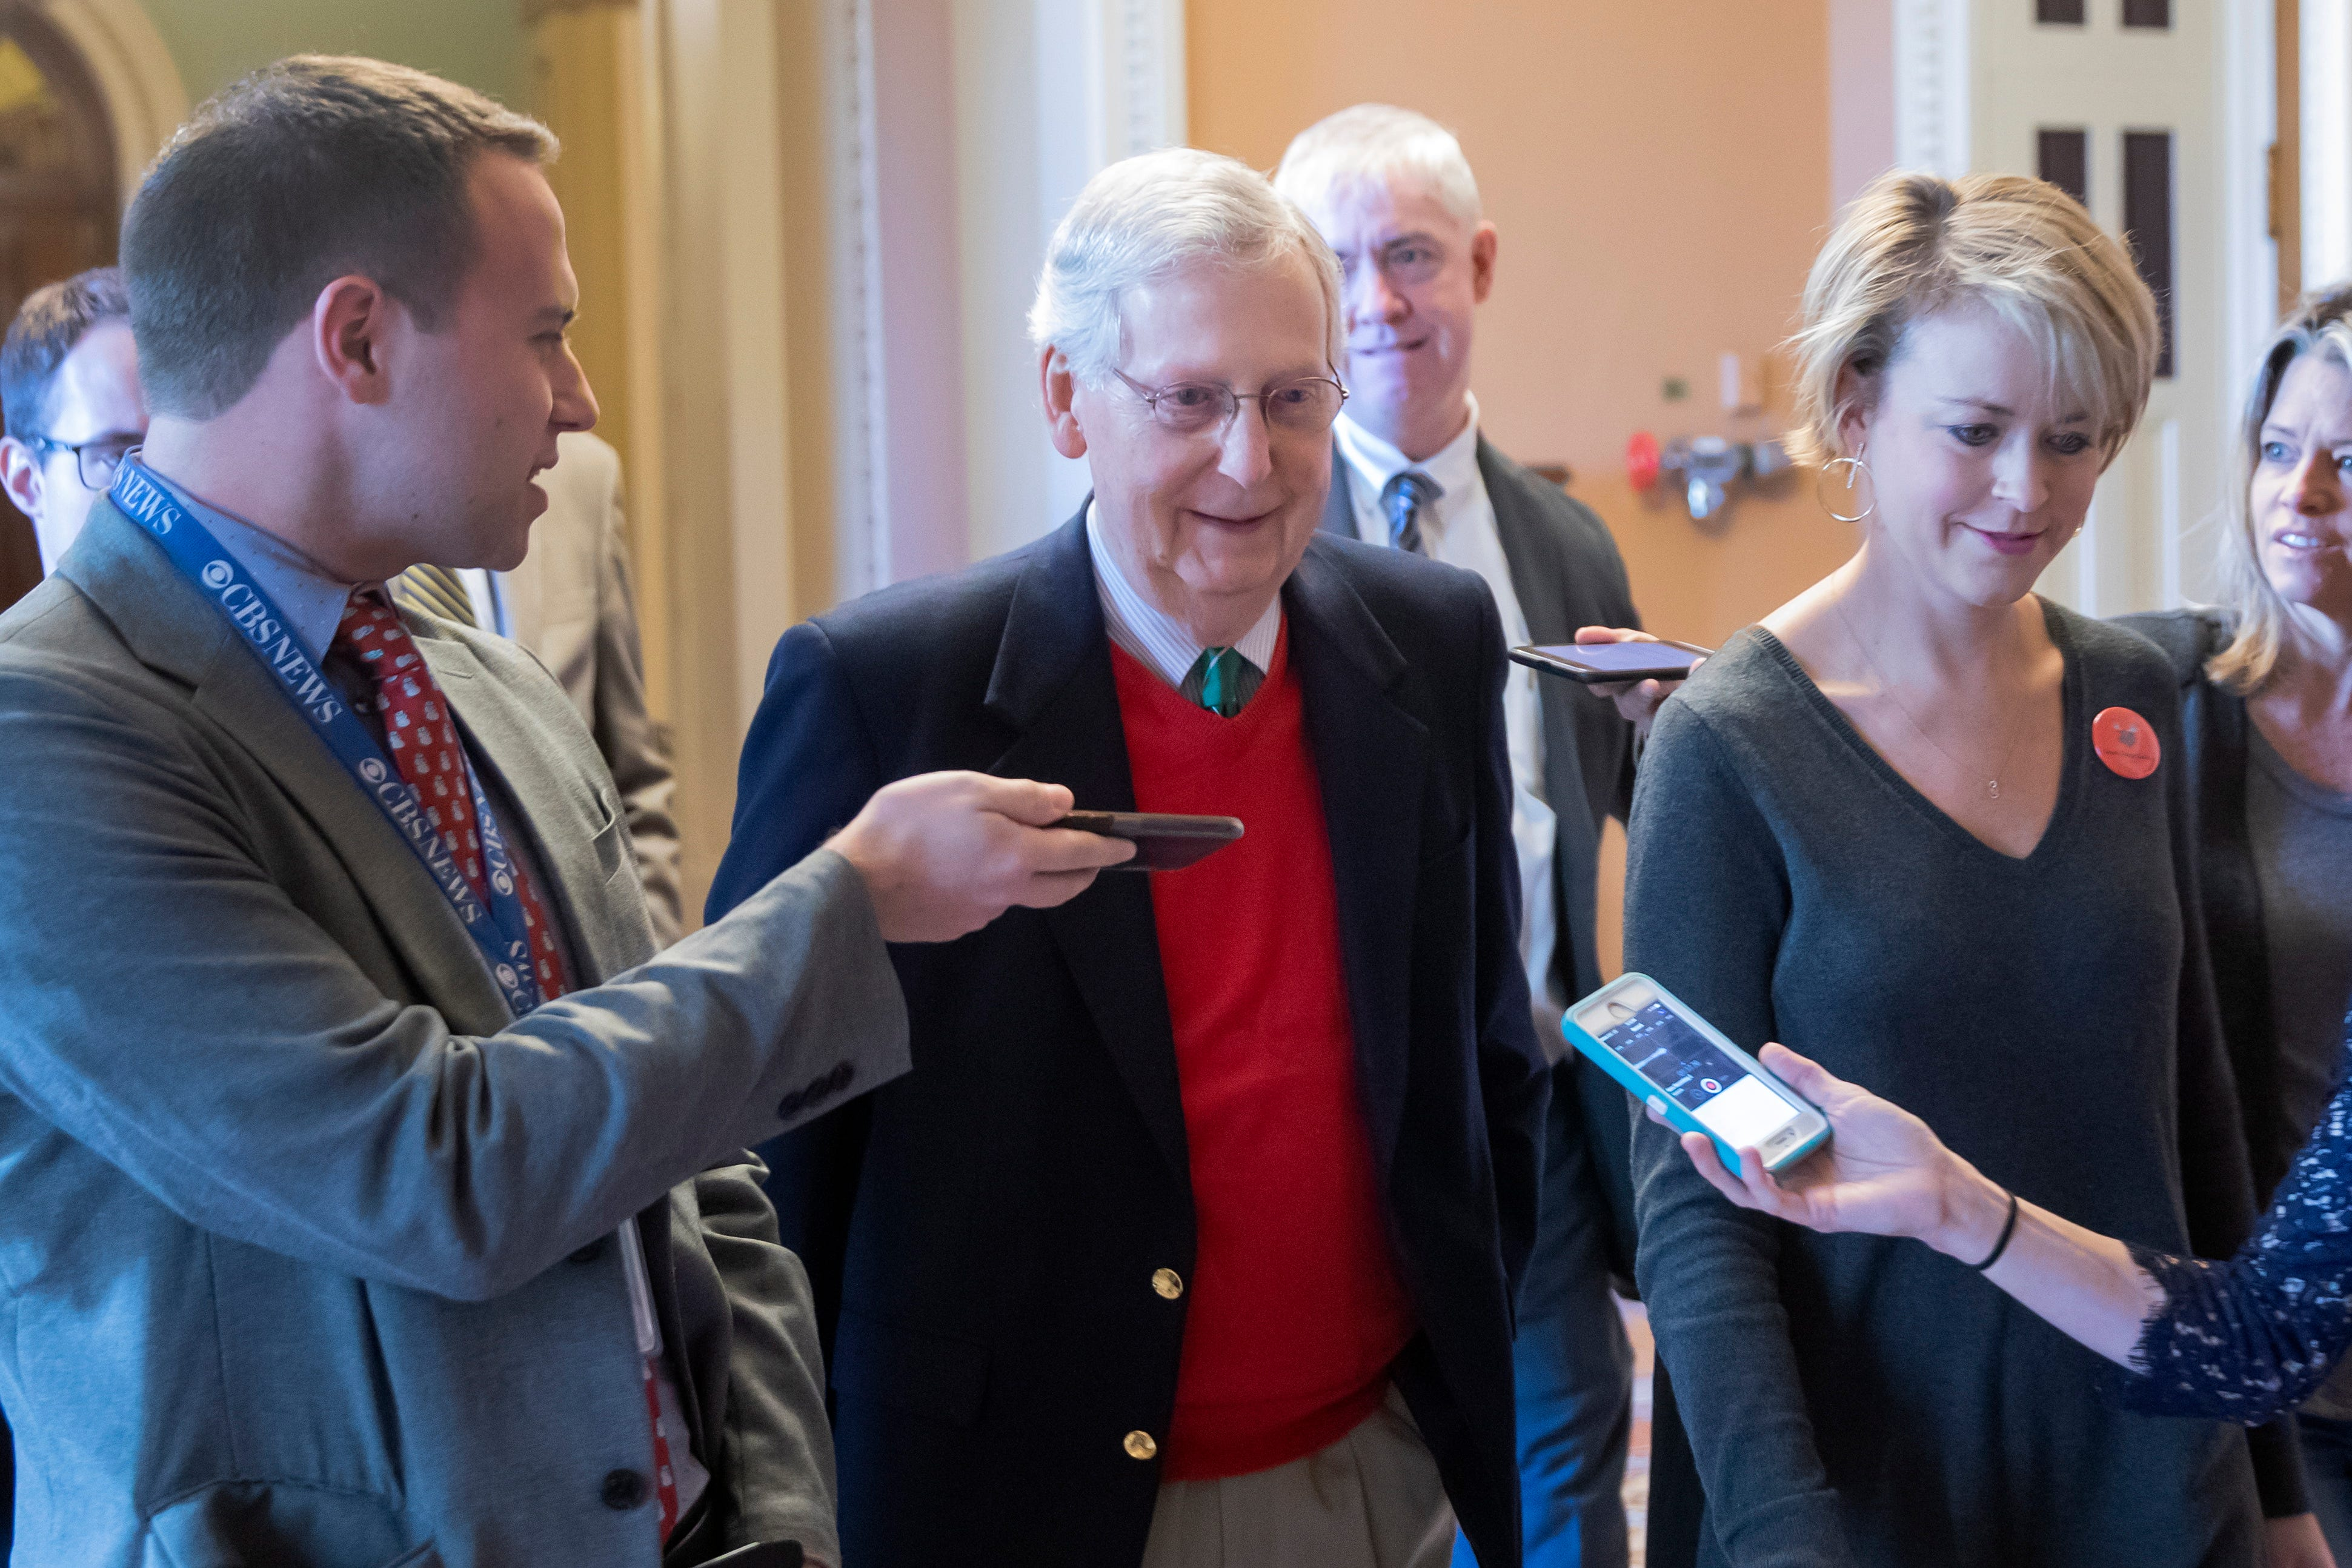 Senate Majority Chief, Republican Mitch McConnell, heart, is surrounded by reporters after leaving the Senate chamber at the US Capitol in Washington, DC on Dec. 22, 2018.